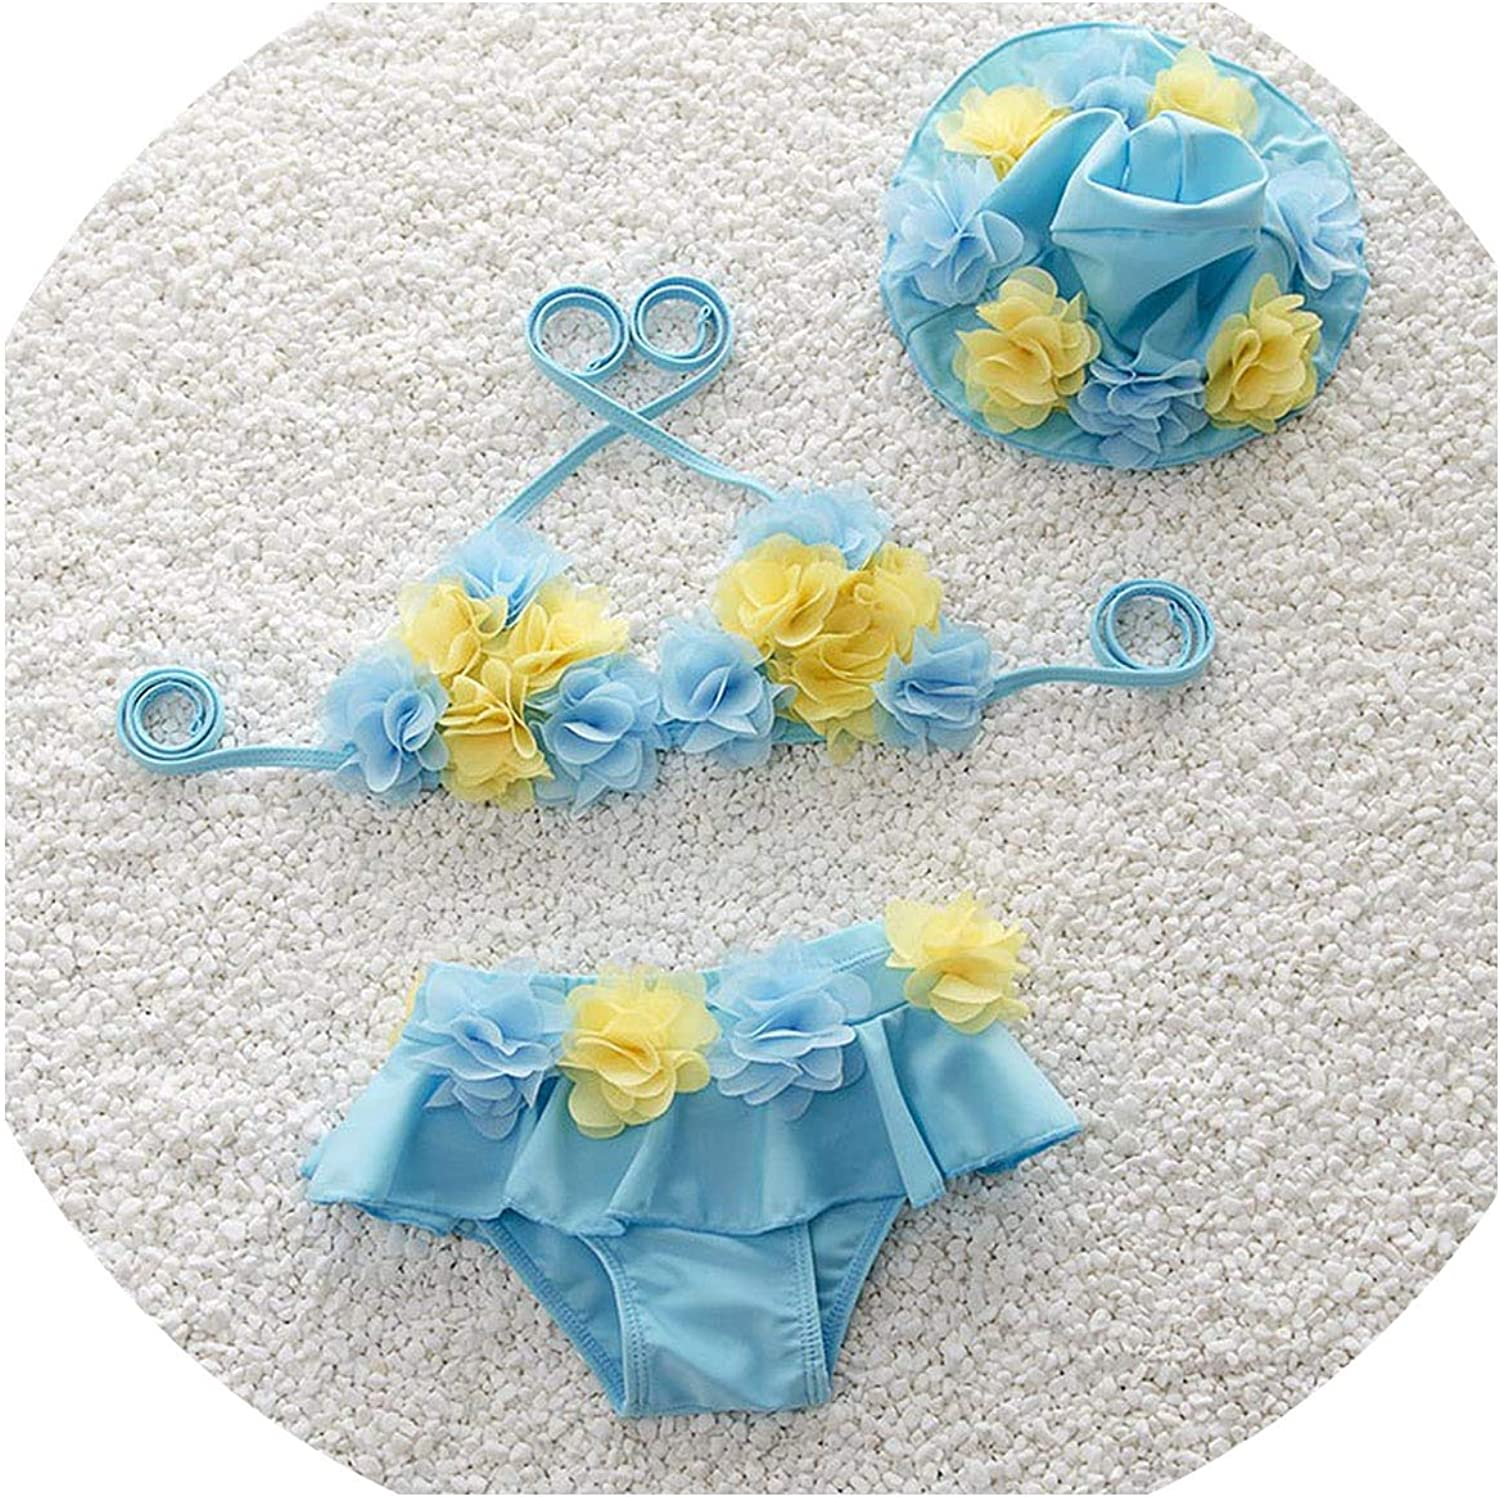 Cute Baby Little Girls Bikini Swimsuit Bathing Suit Girls Floral Baby Girls Two Pieces Suits Children